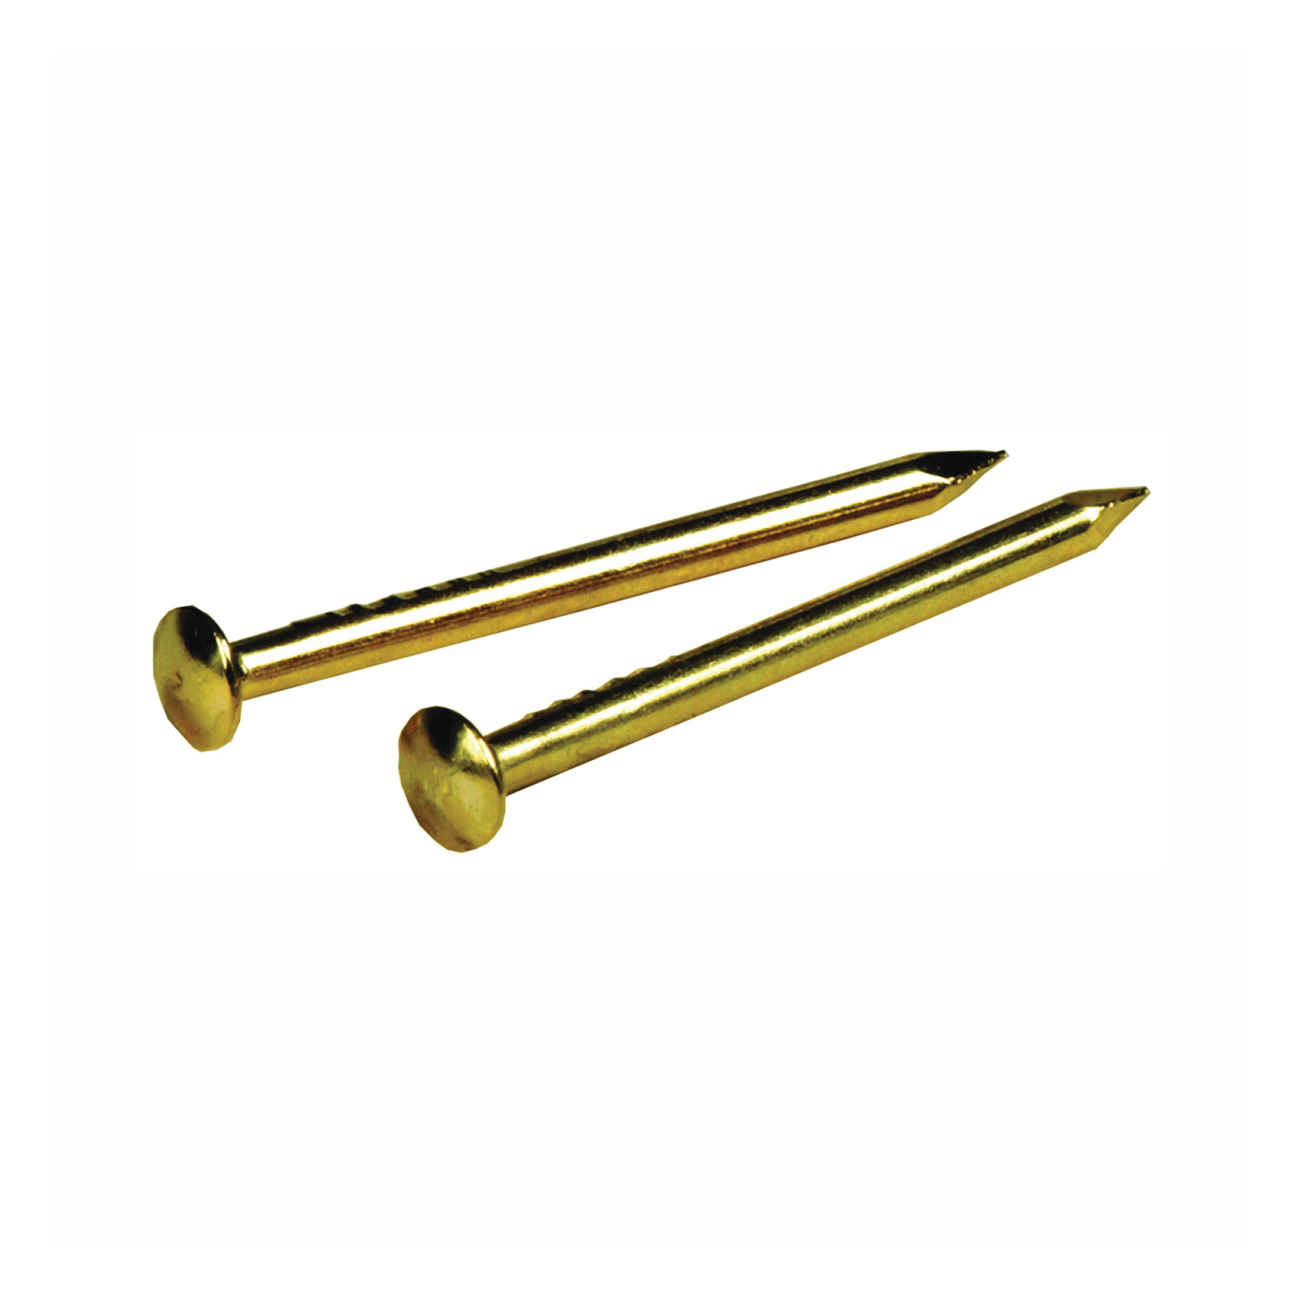 Picture of HILLMAN 122622 Escutcheon Pin, 3/4 in L, Steel, Brass